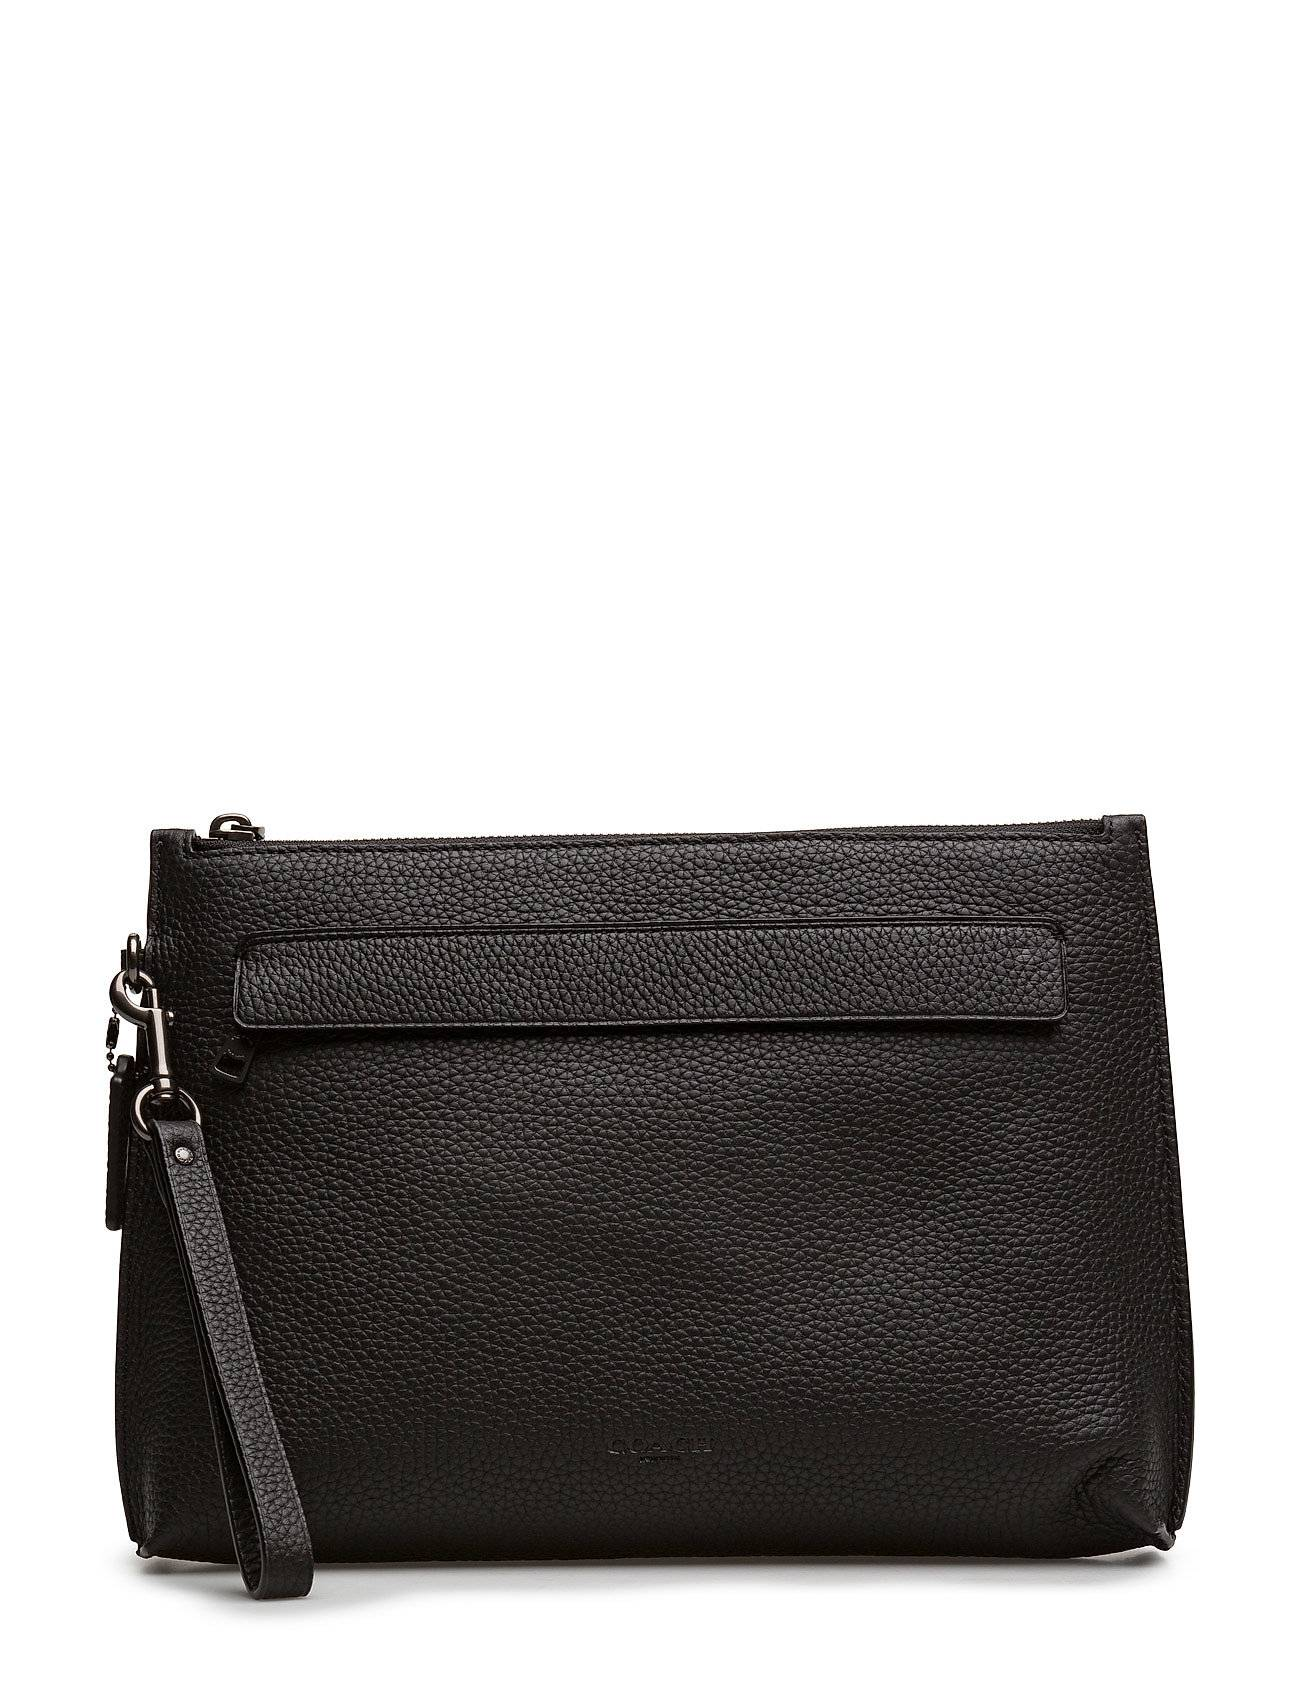 Coach Pouch In Pebbled Leather